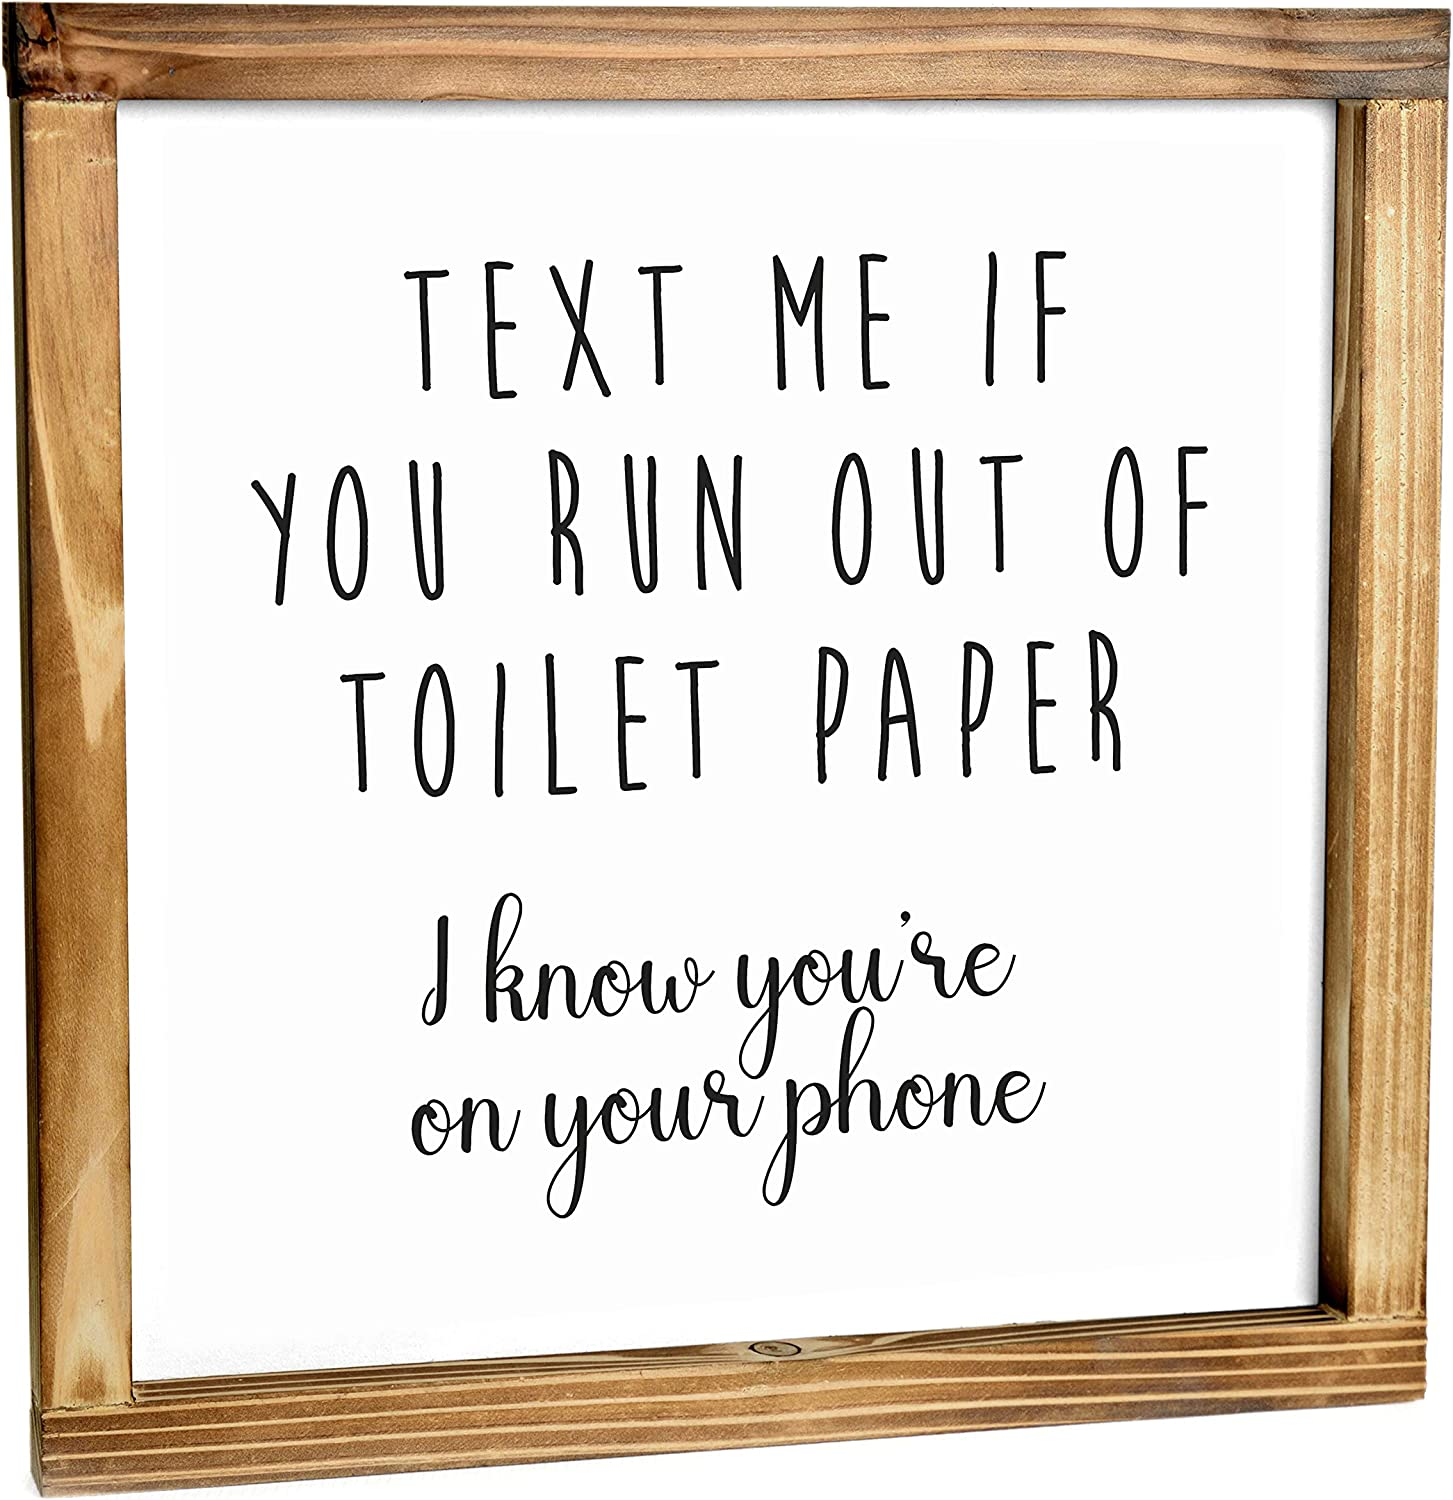 Text Me If You Run Out Of Toilet Paper Sign - Funny Farmhouse Decor Sign, Cute Guest Bathroom Decor Wall Art, Rustic Home Decor, Modern Farmhouse Sign for Bathroom Wall With Funny Quotes 12x12 Inch